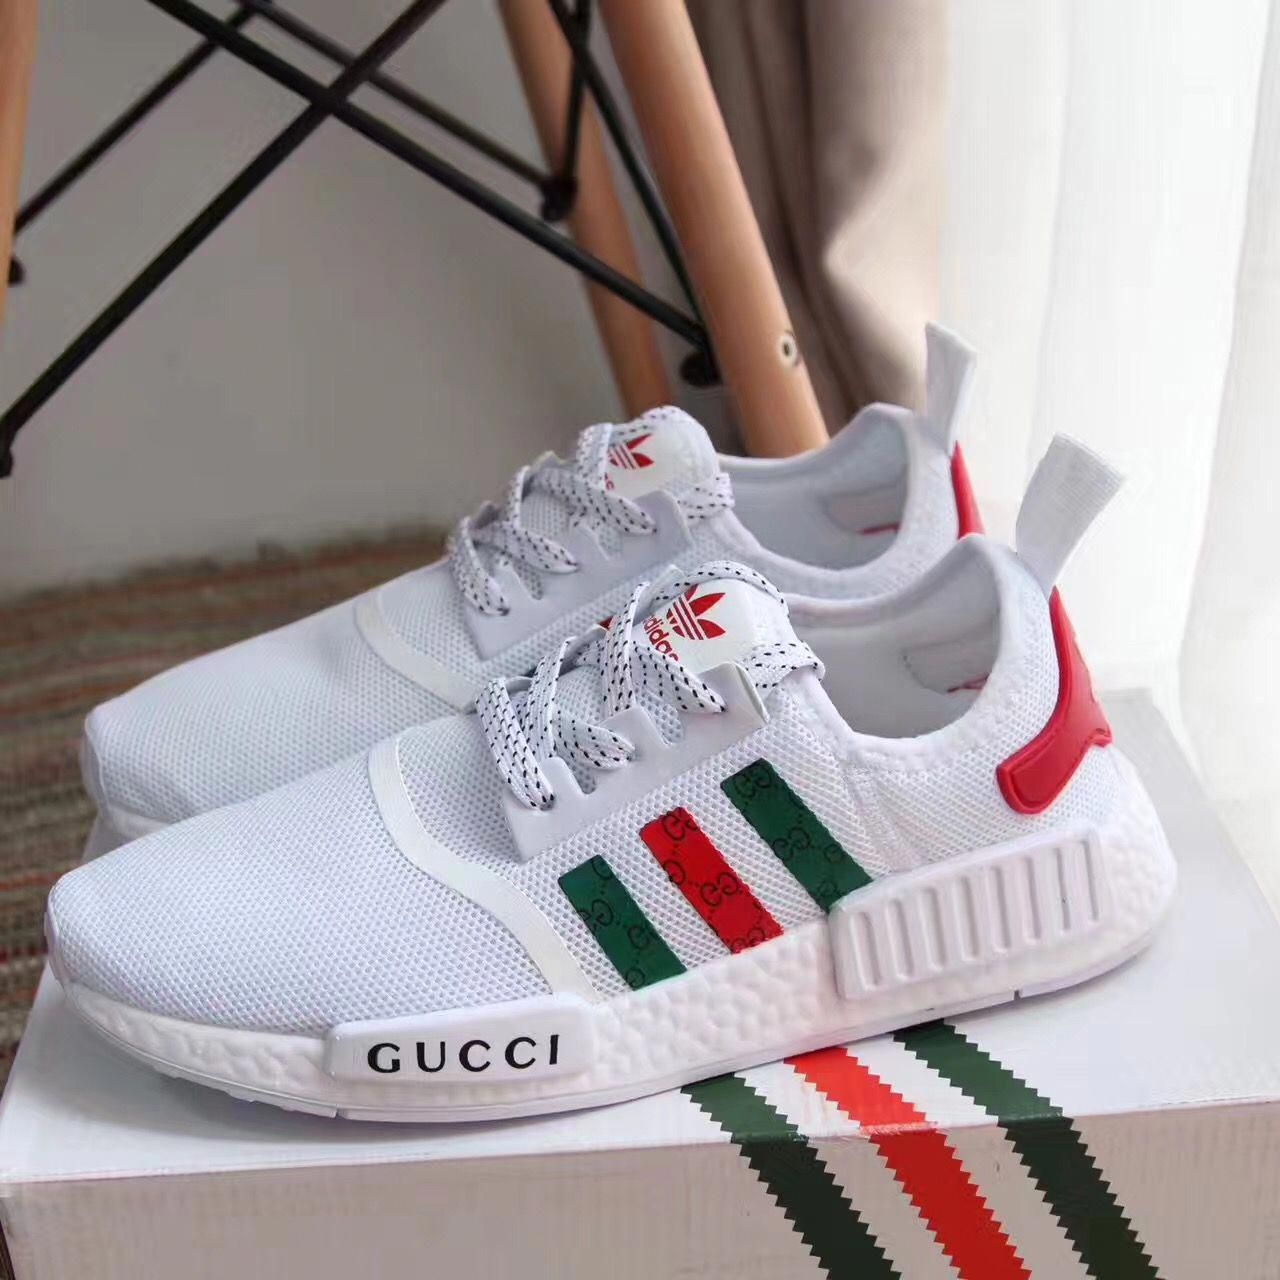 19f68d4960b6 Adidas   Gucci woman man unisex sport sneakers shoes  Sneakers ...